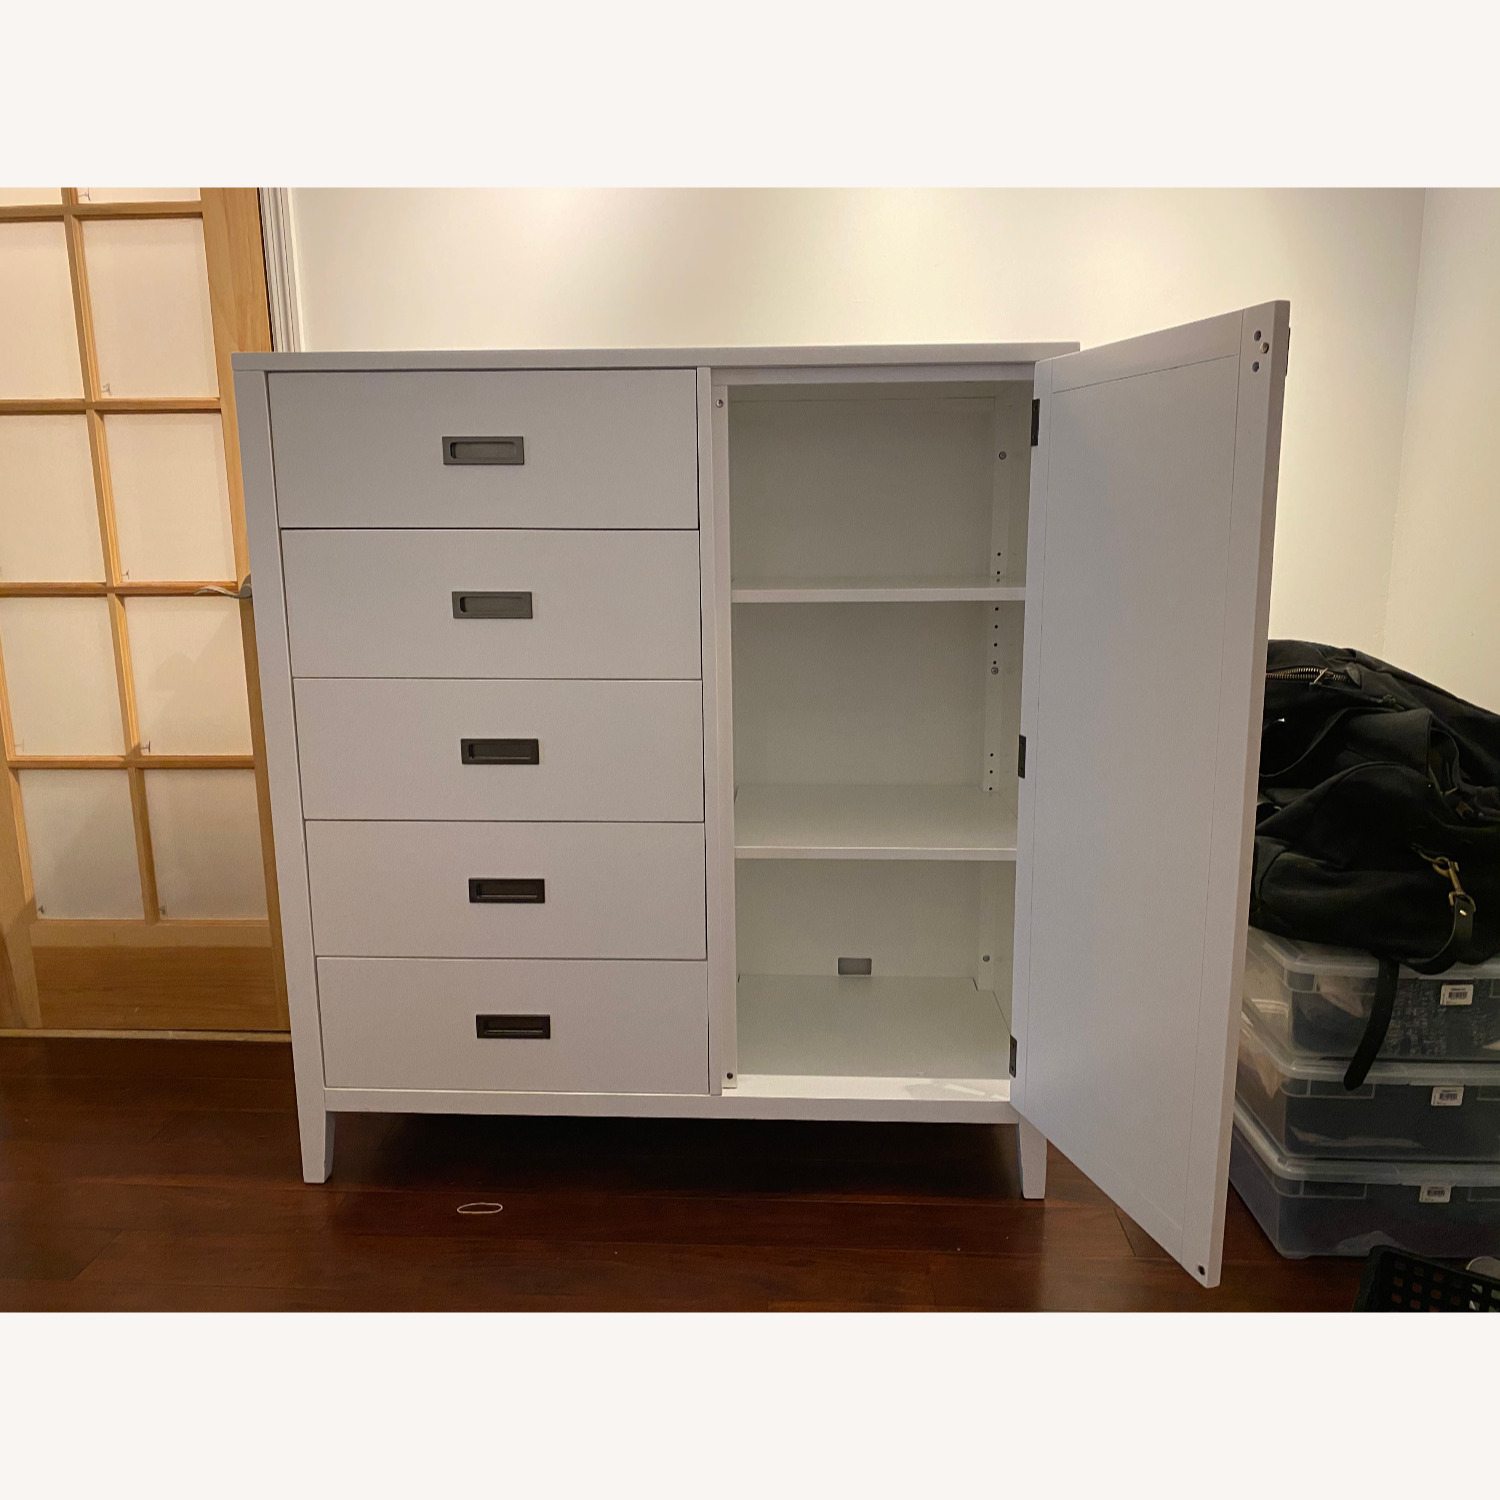 Crate and Barrel Arch Wardrobe / Dresser - image-2